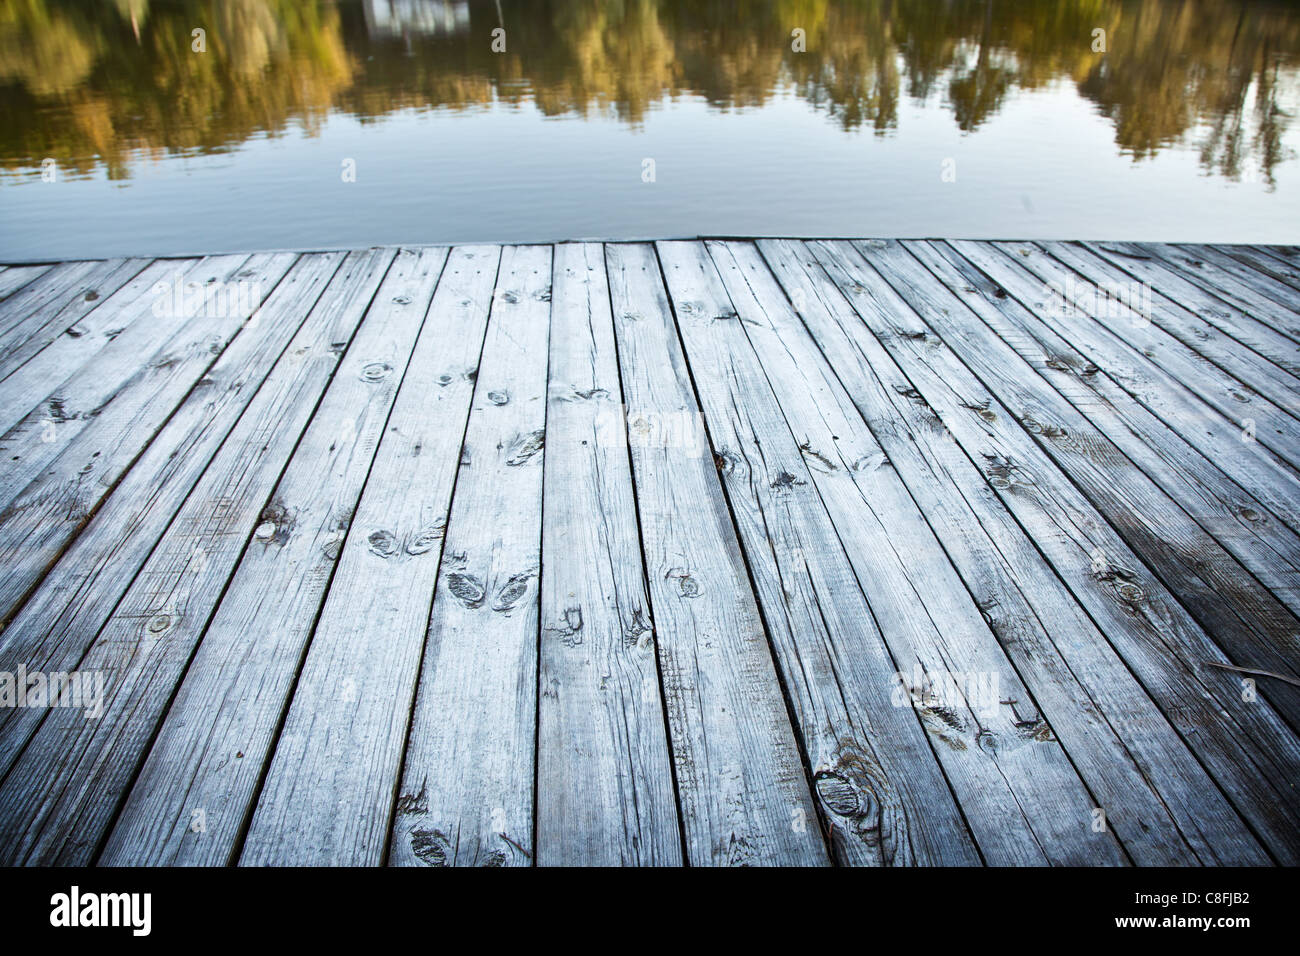 Close up shot of old wooden pier. - Stock Image